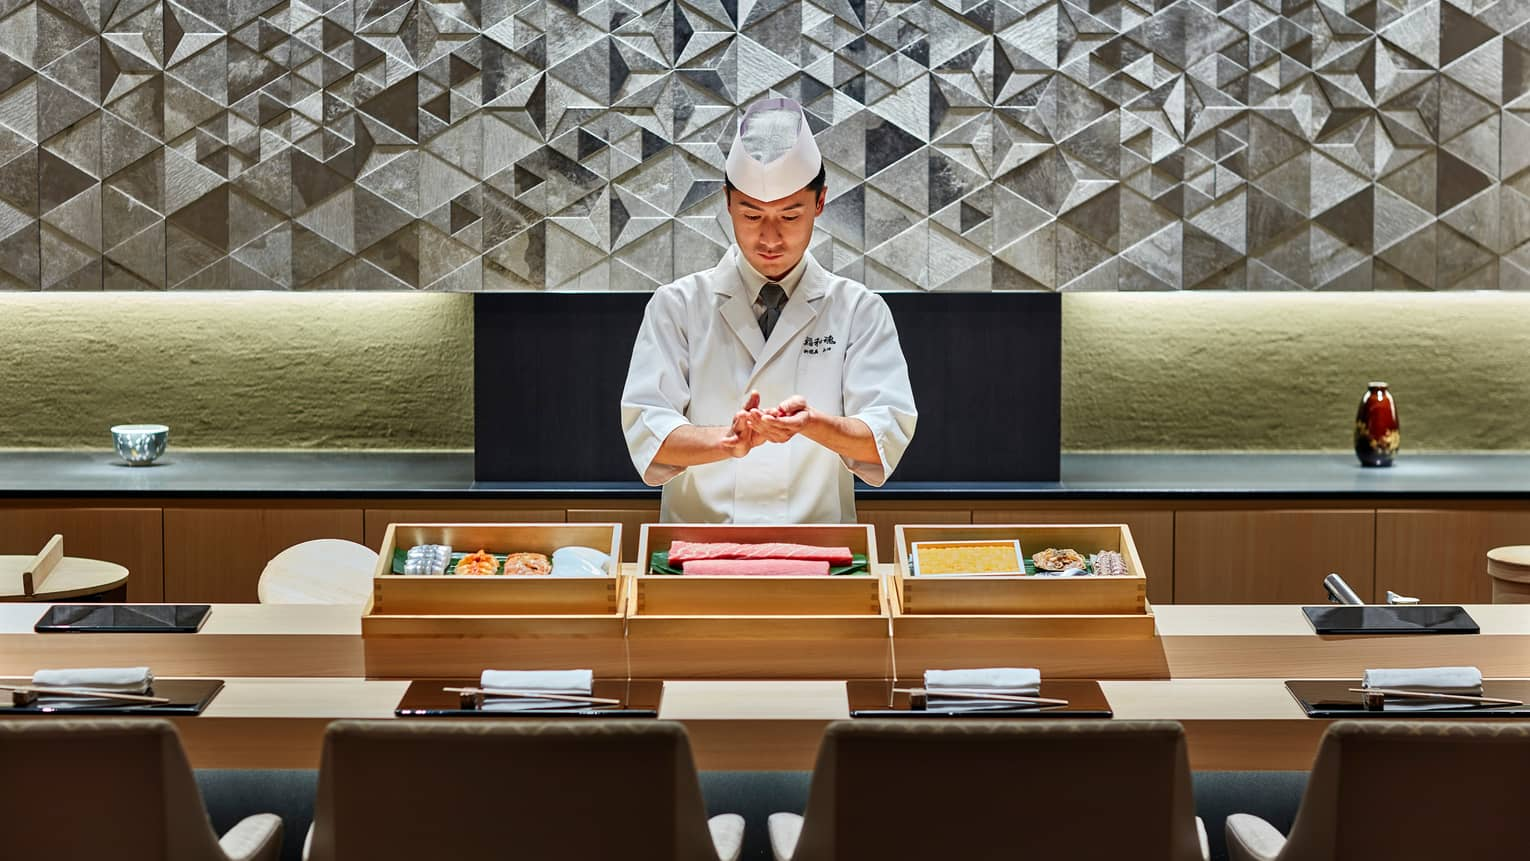 Sushi chef prepares fish behind bamboo display, Sushi wakon bar